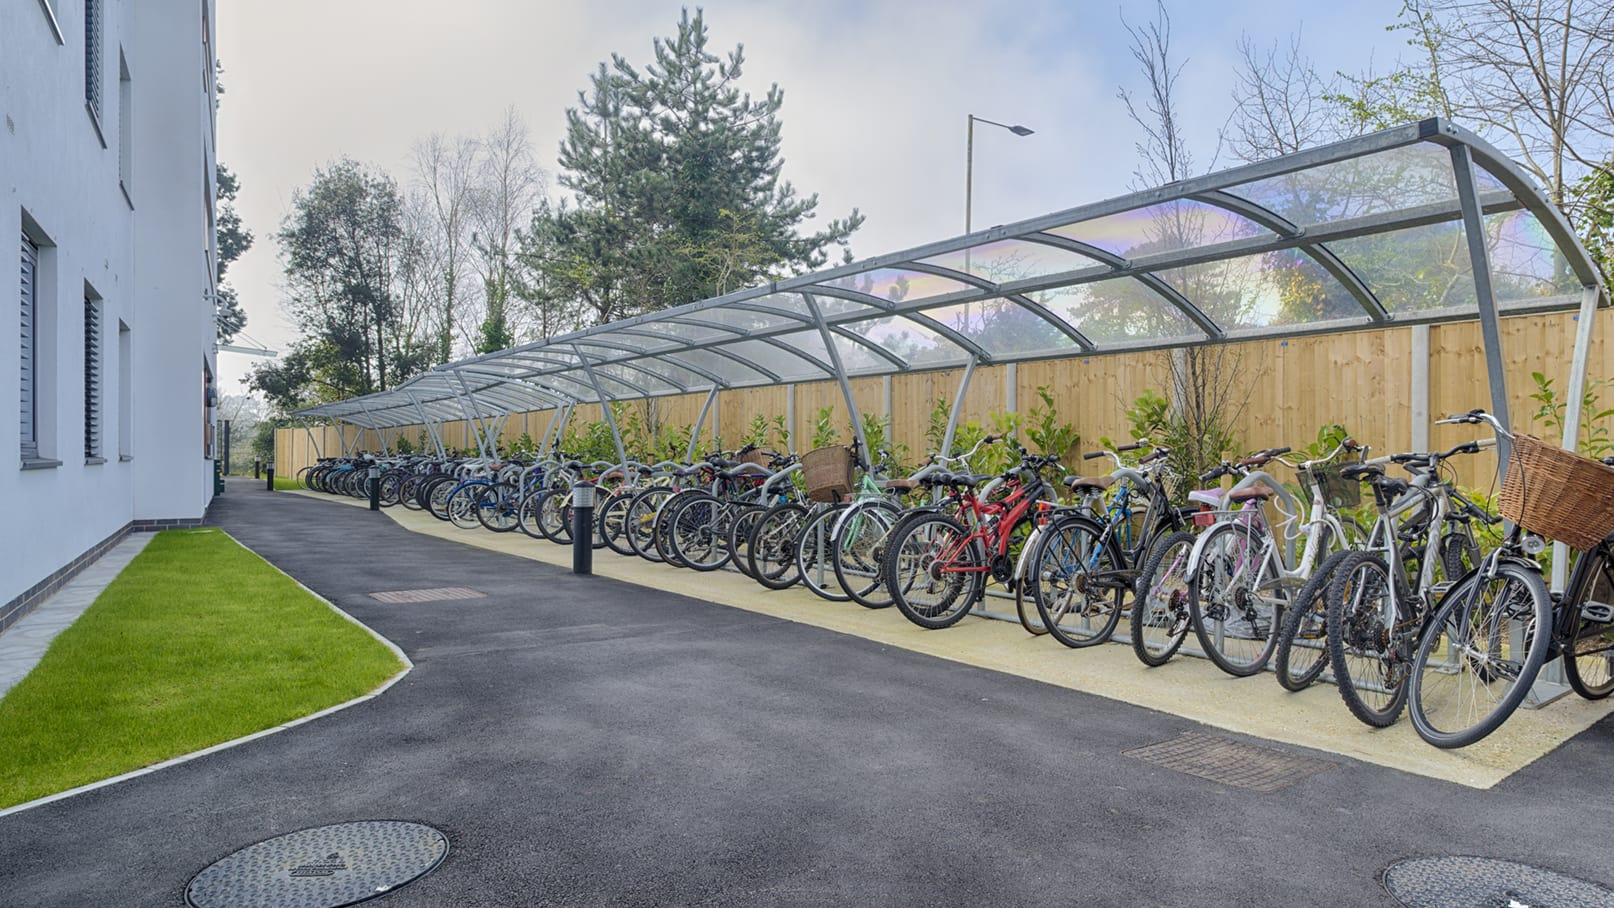 Storage for parking bicycles